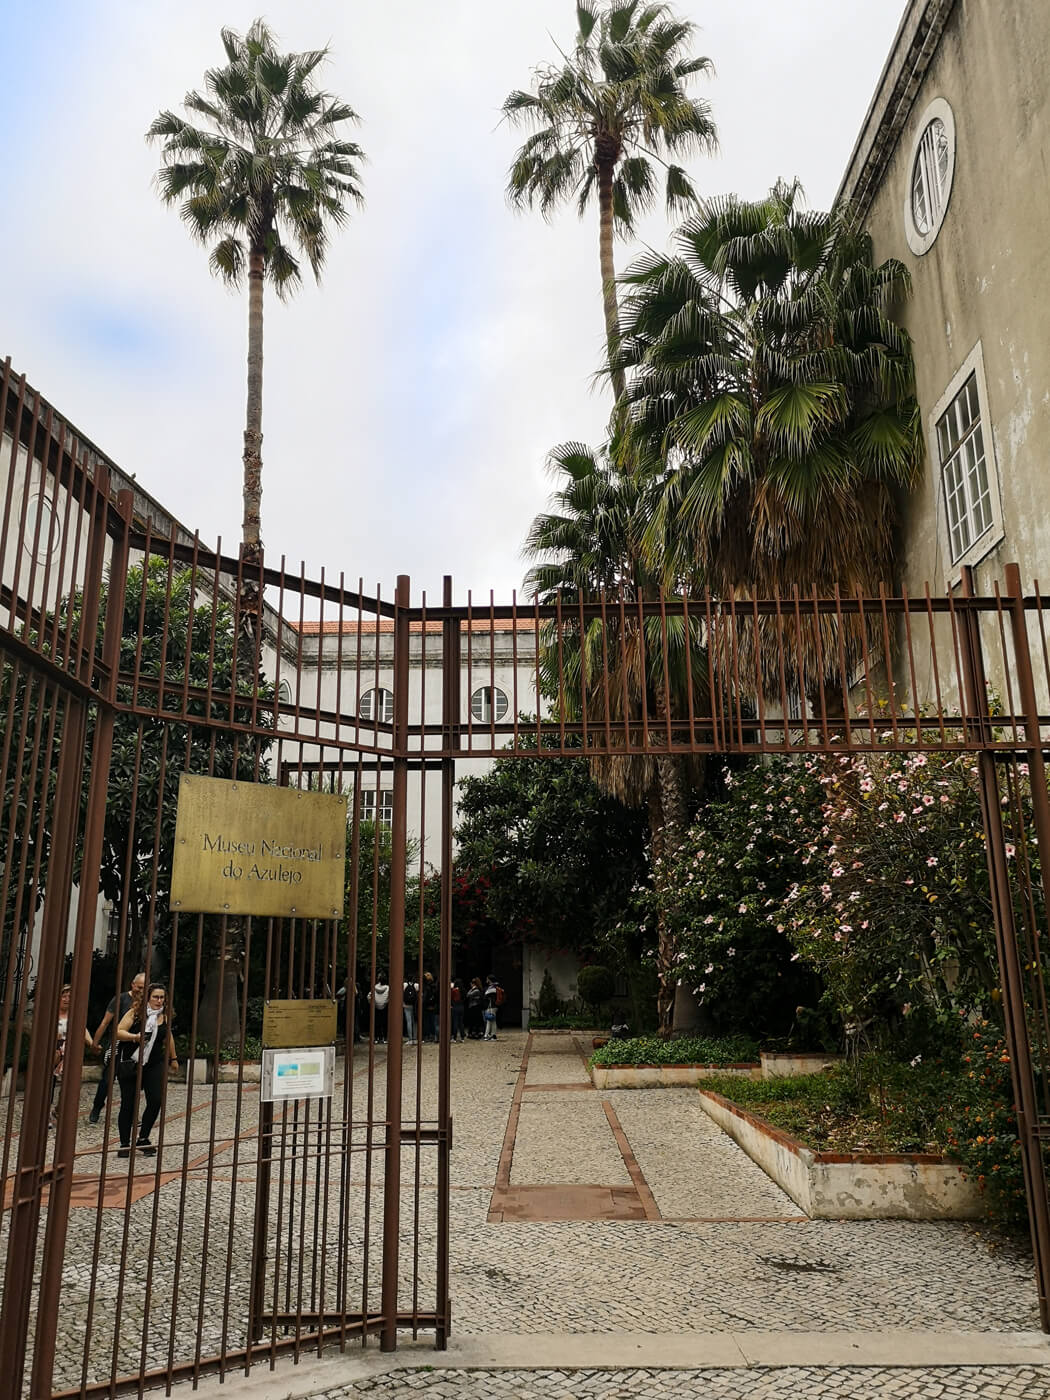 The entrance gates to the National Tile Museum in Lisbon. The courtyard is full of colourful plants and palm trees.